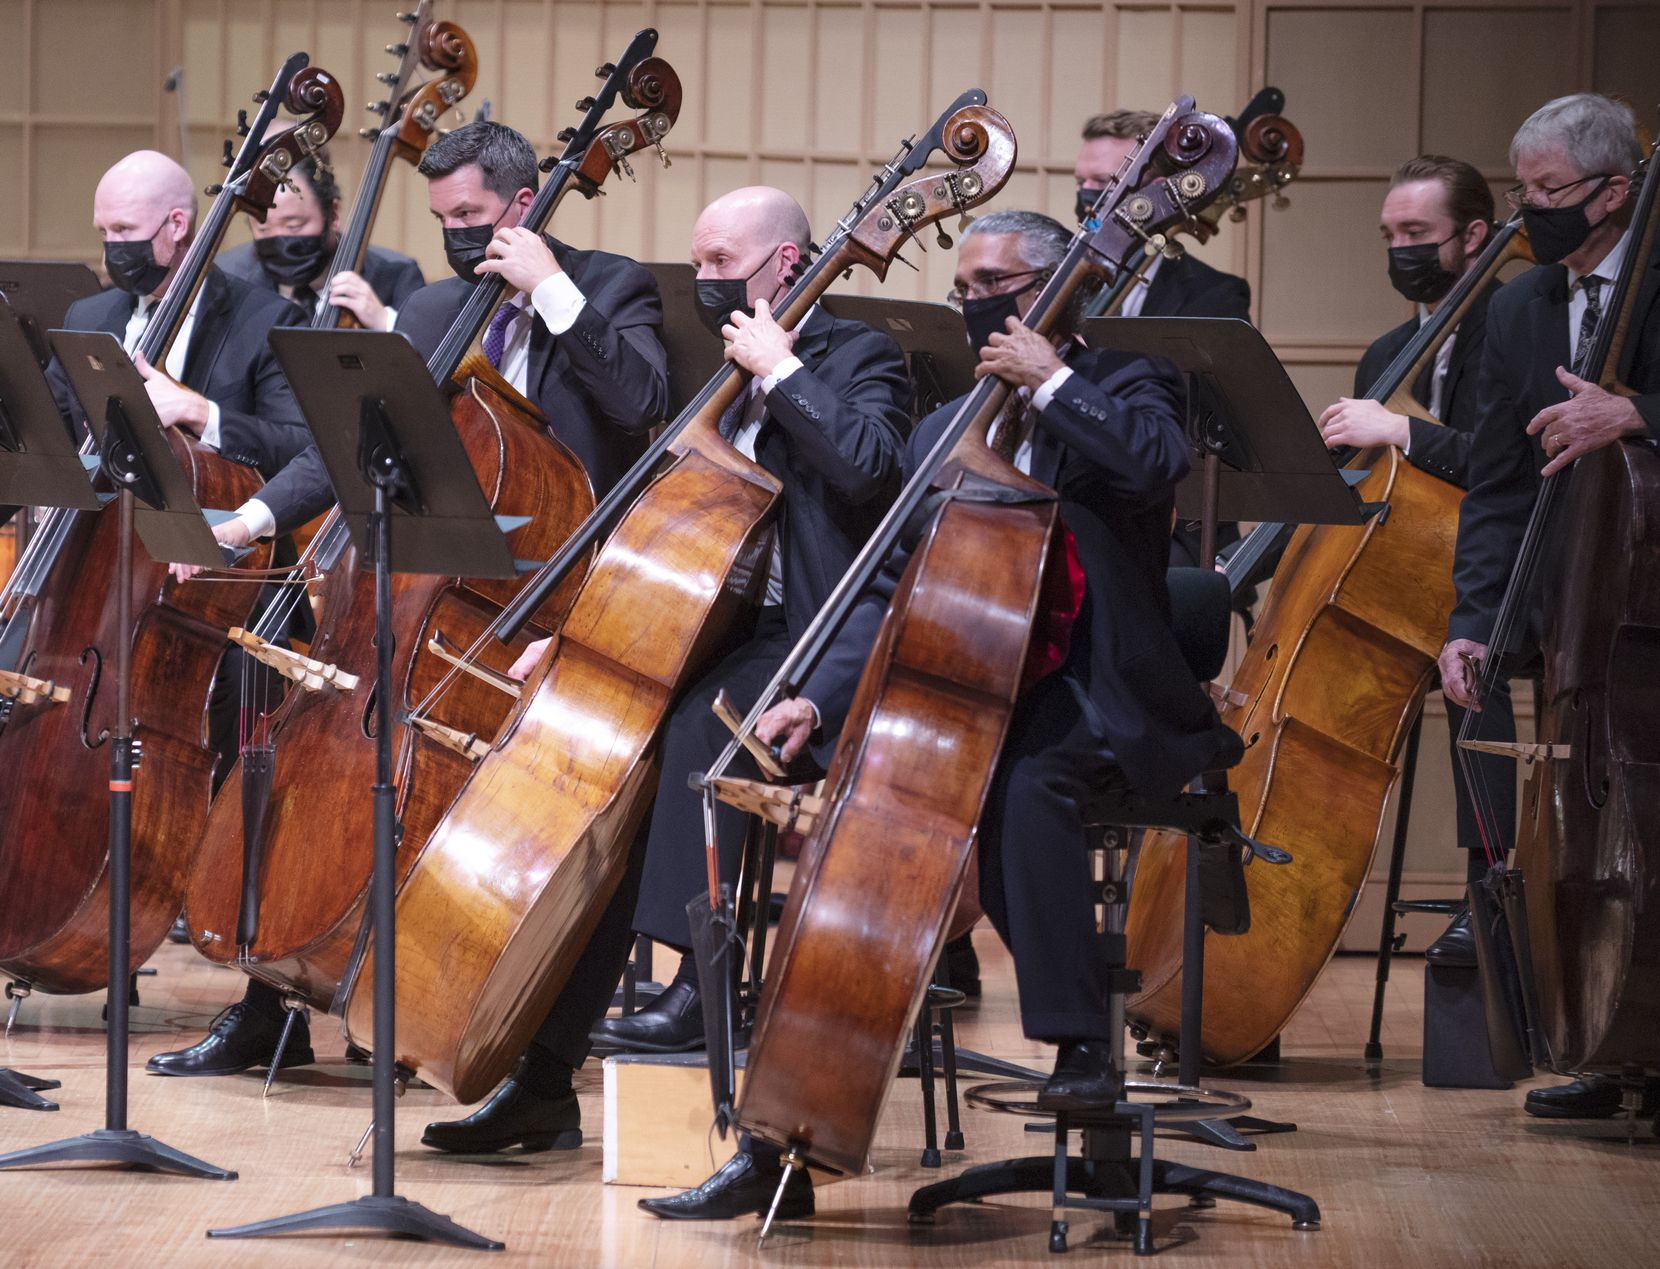 Bass players from the Dallas Symphony Orchestra and Metropolitan Opera Orchestra perform in Mahler's Symphony No.1 in D Major.